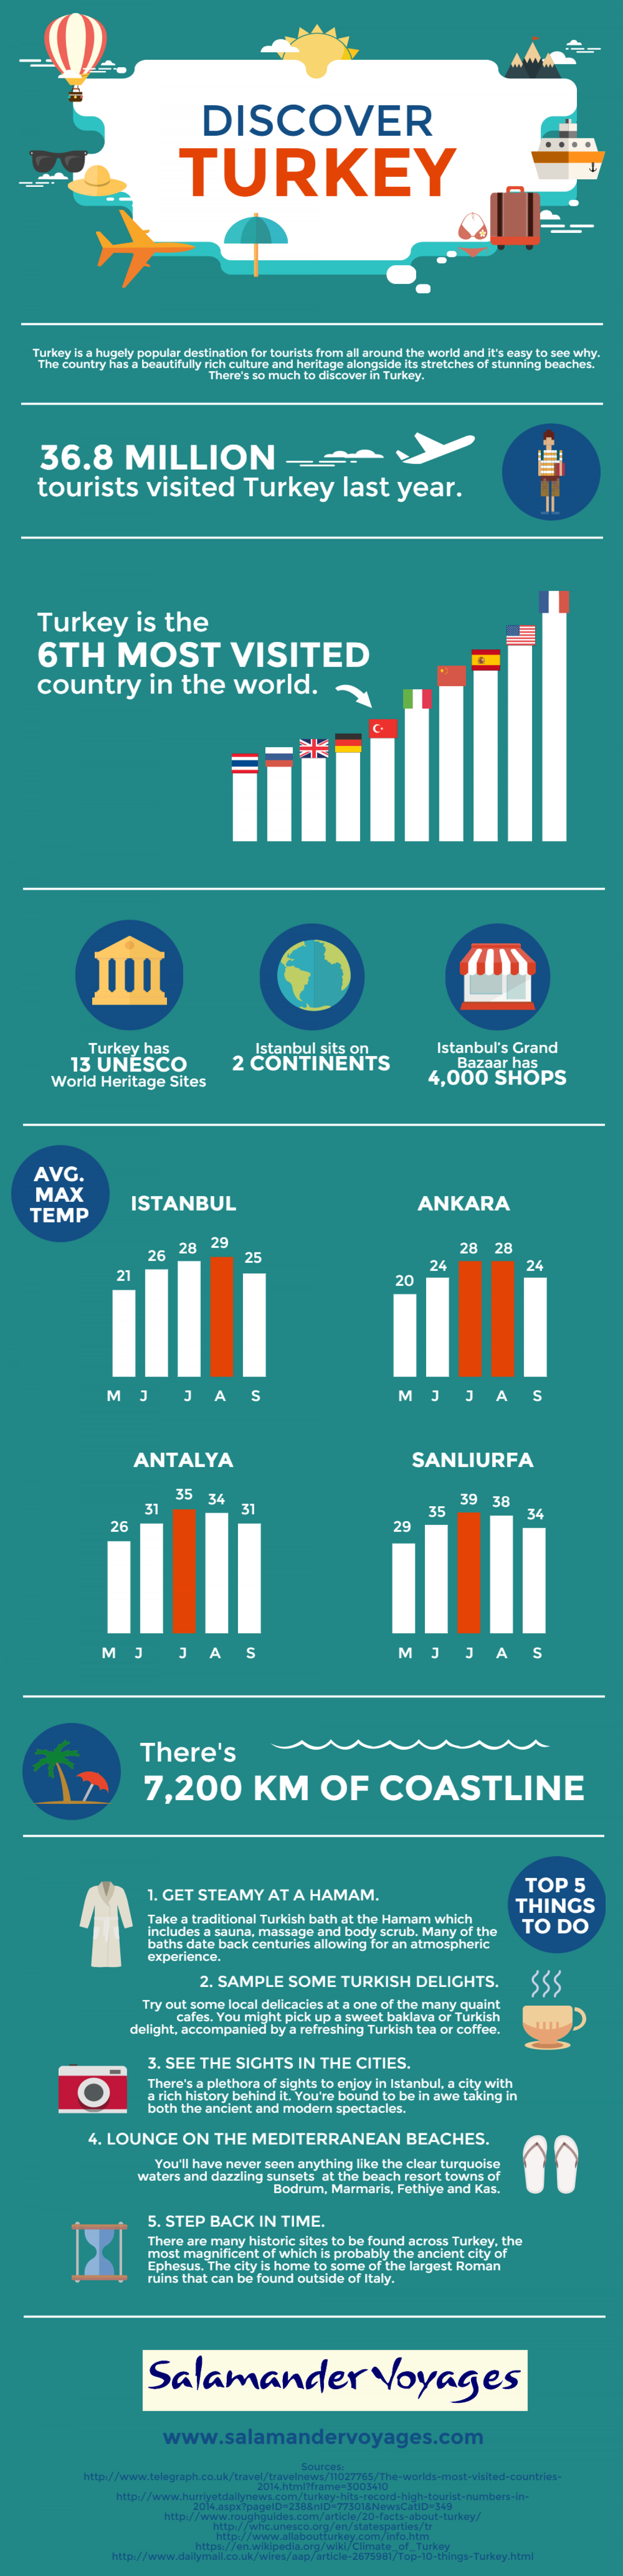 Discover Turkey Infographic